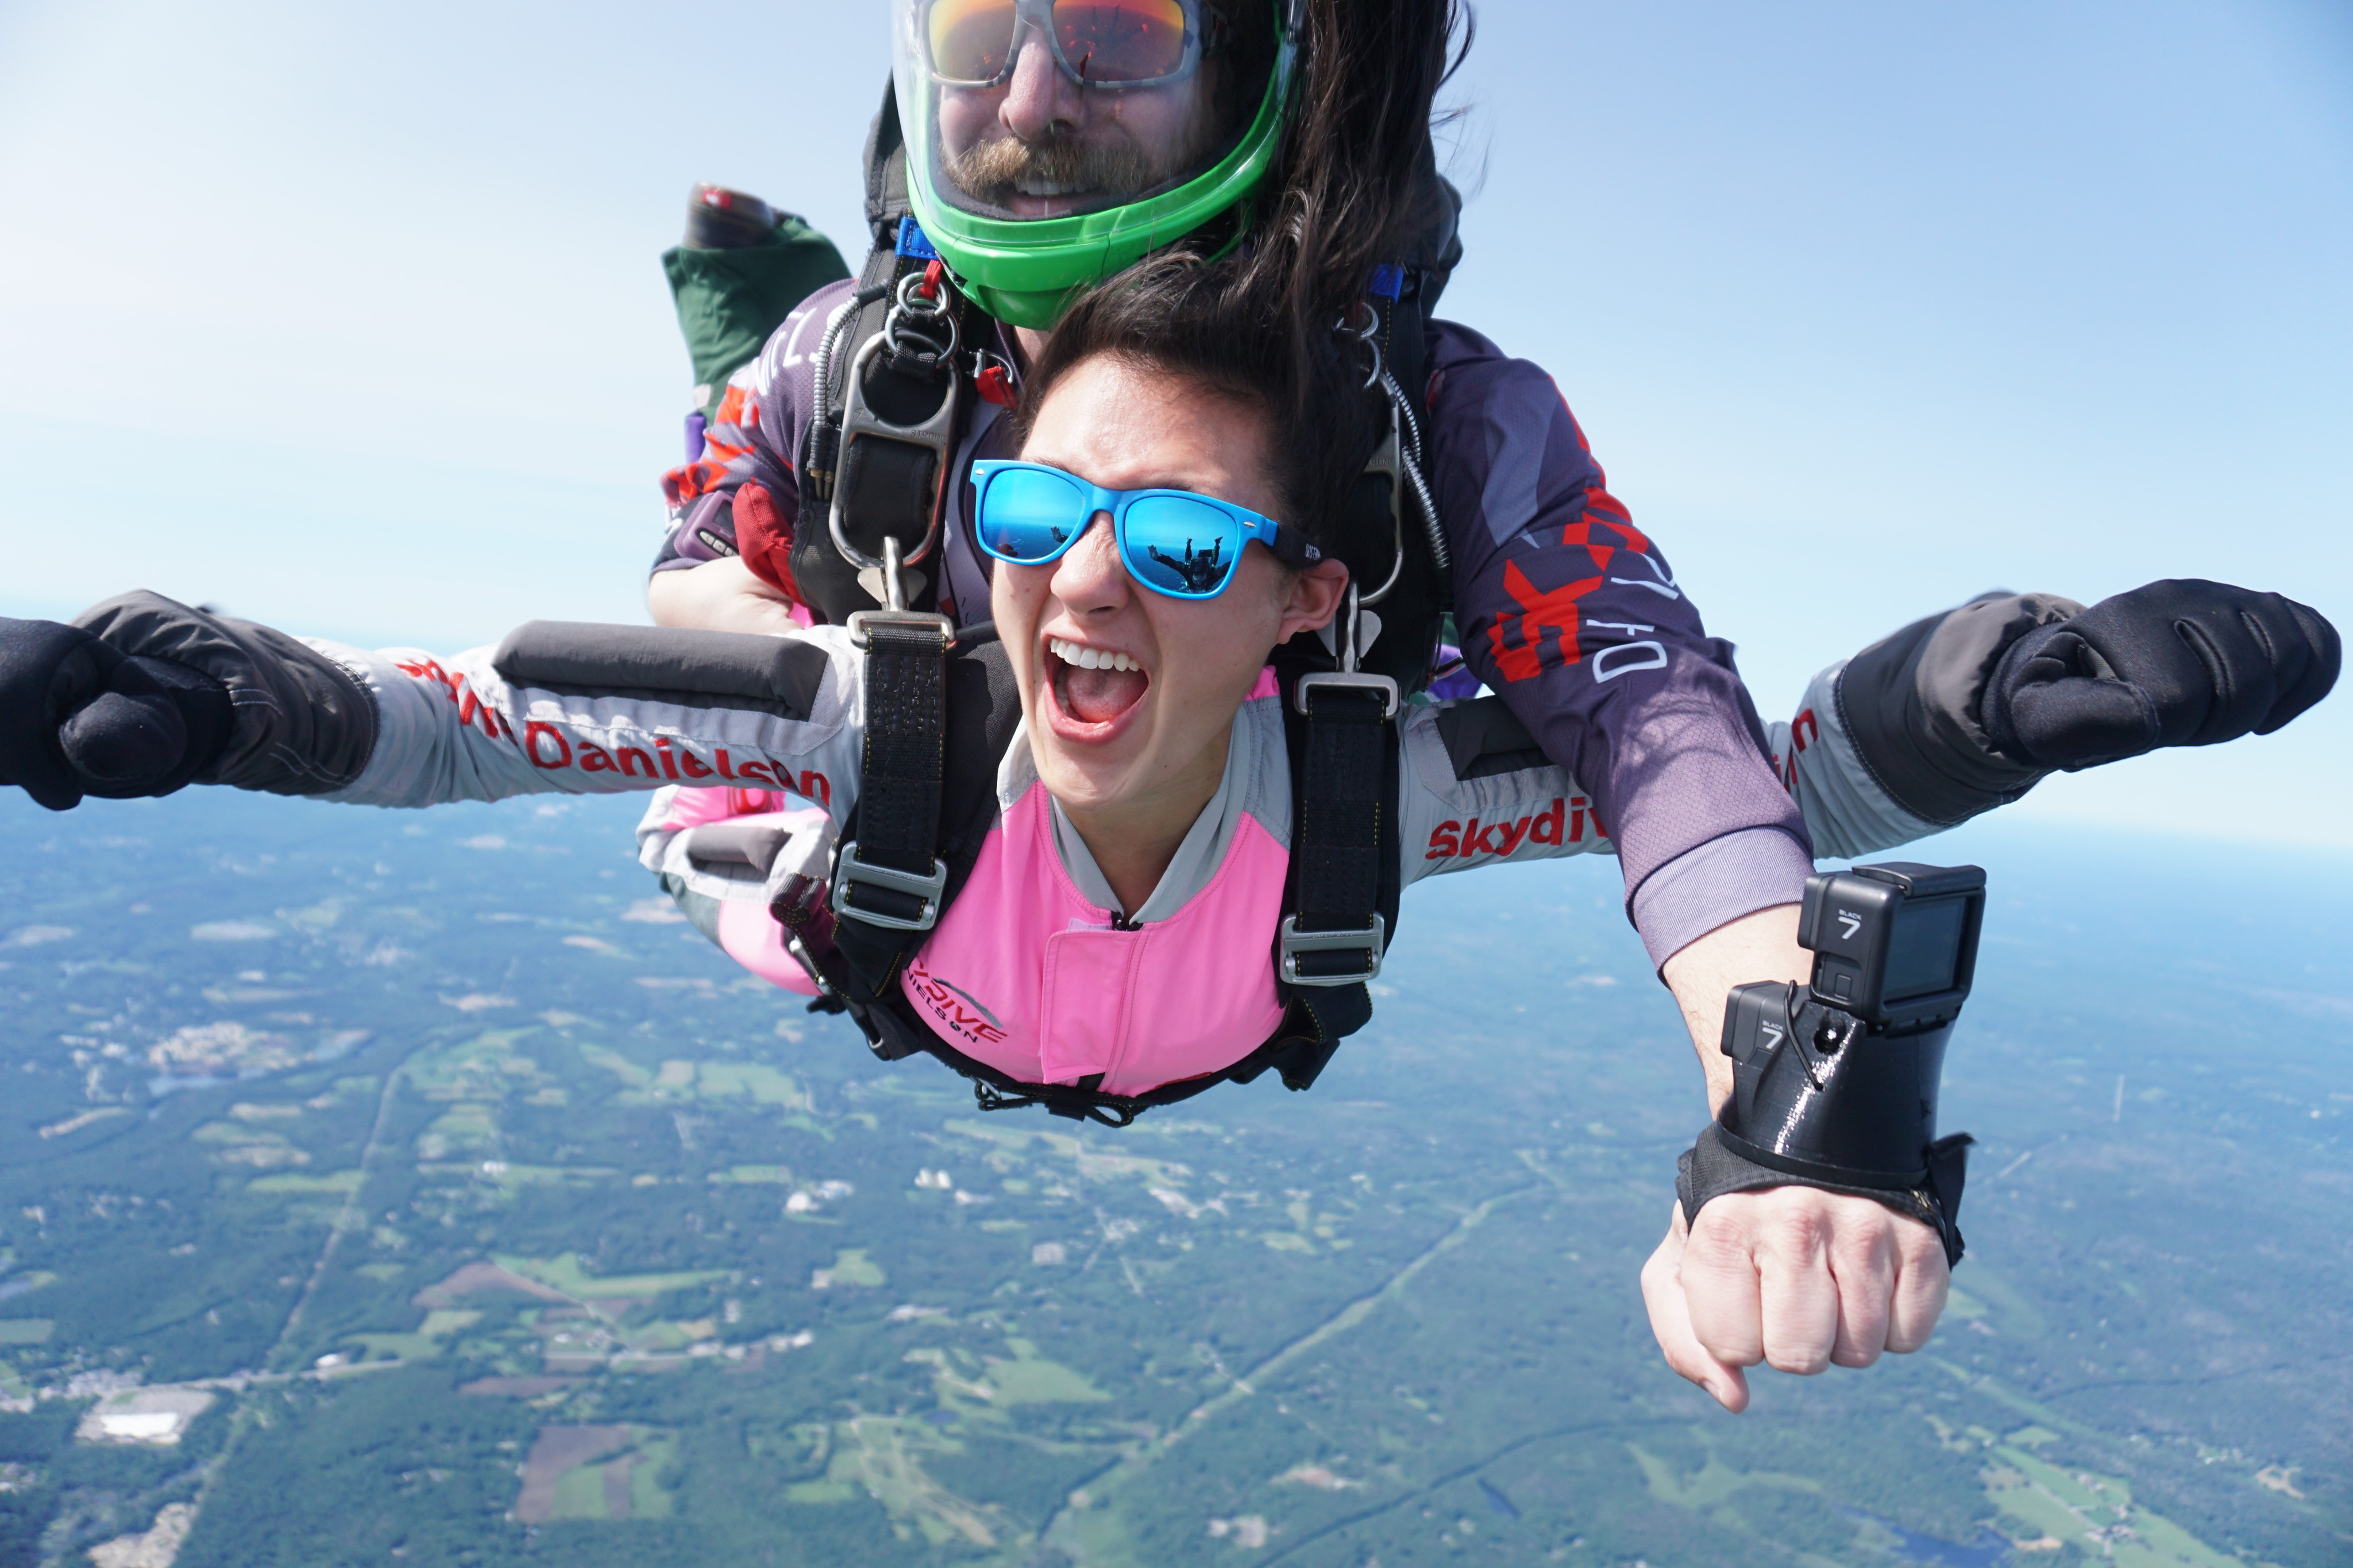 Ultimate Video package captures every first skydive moment